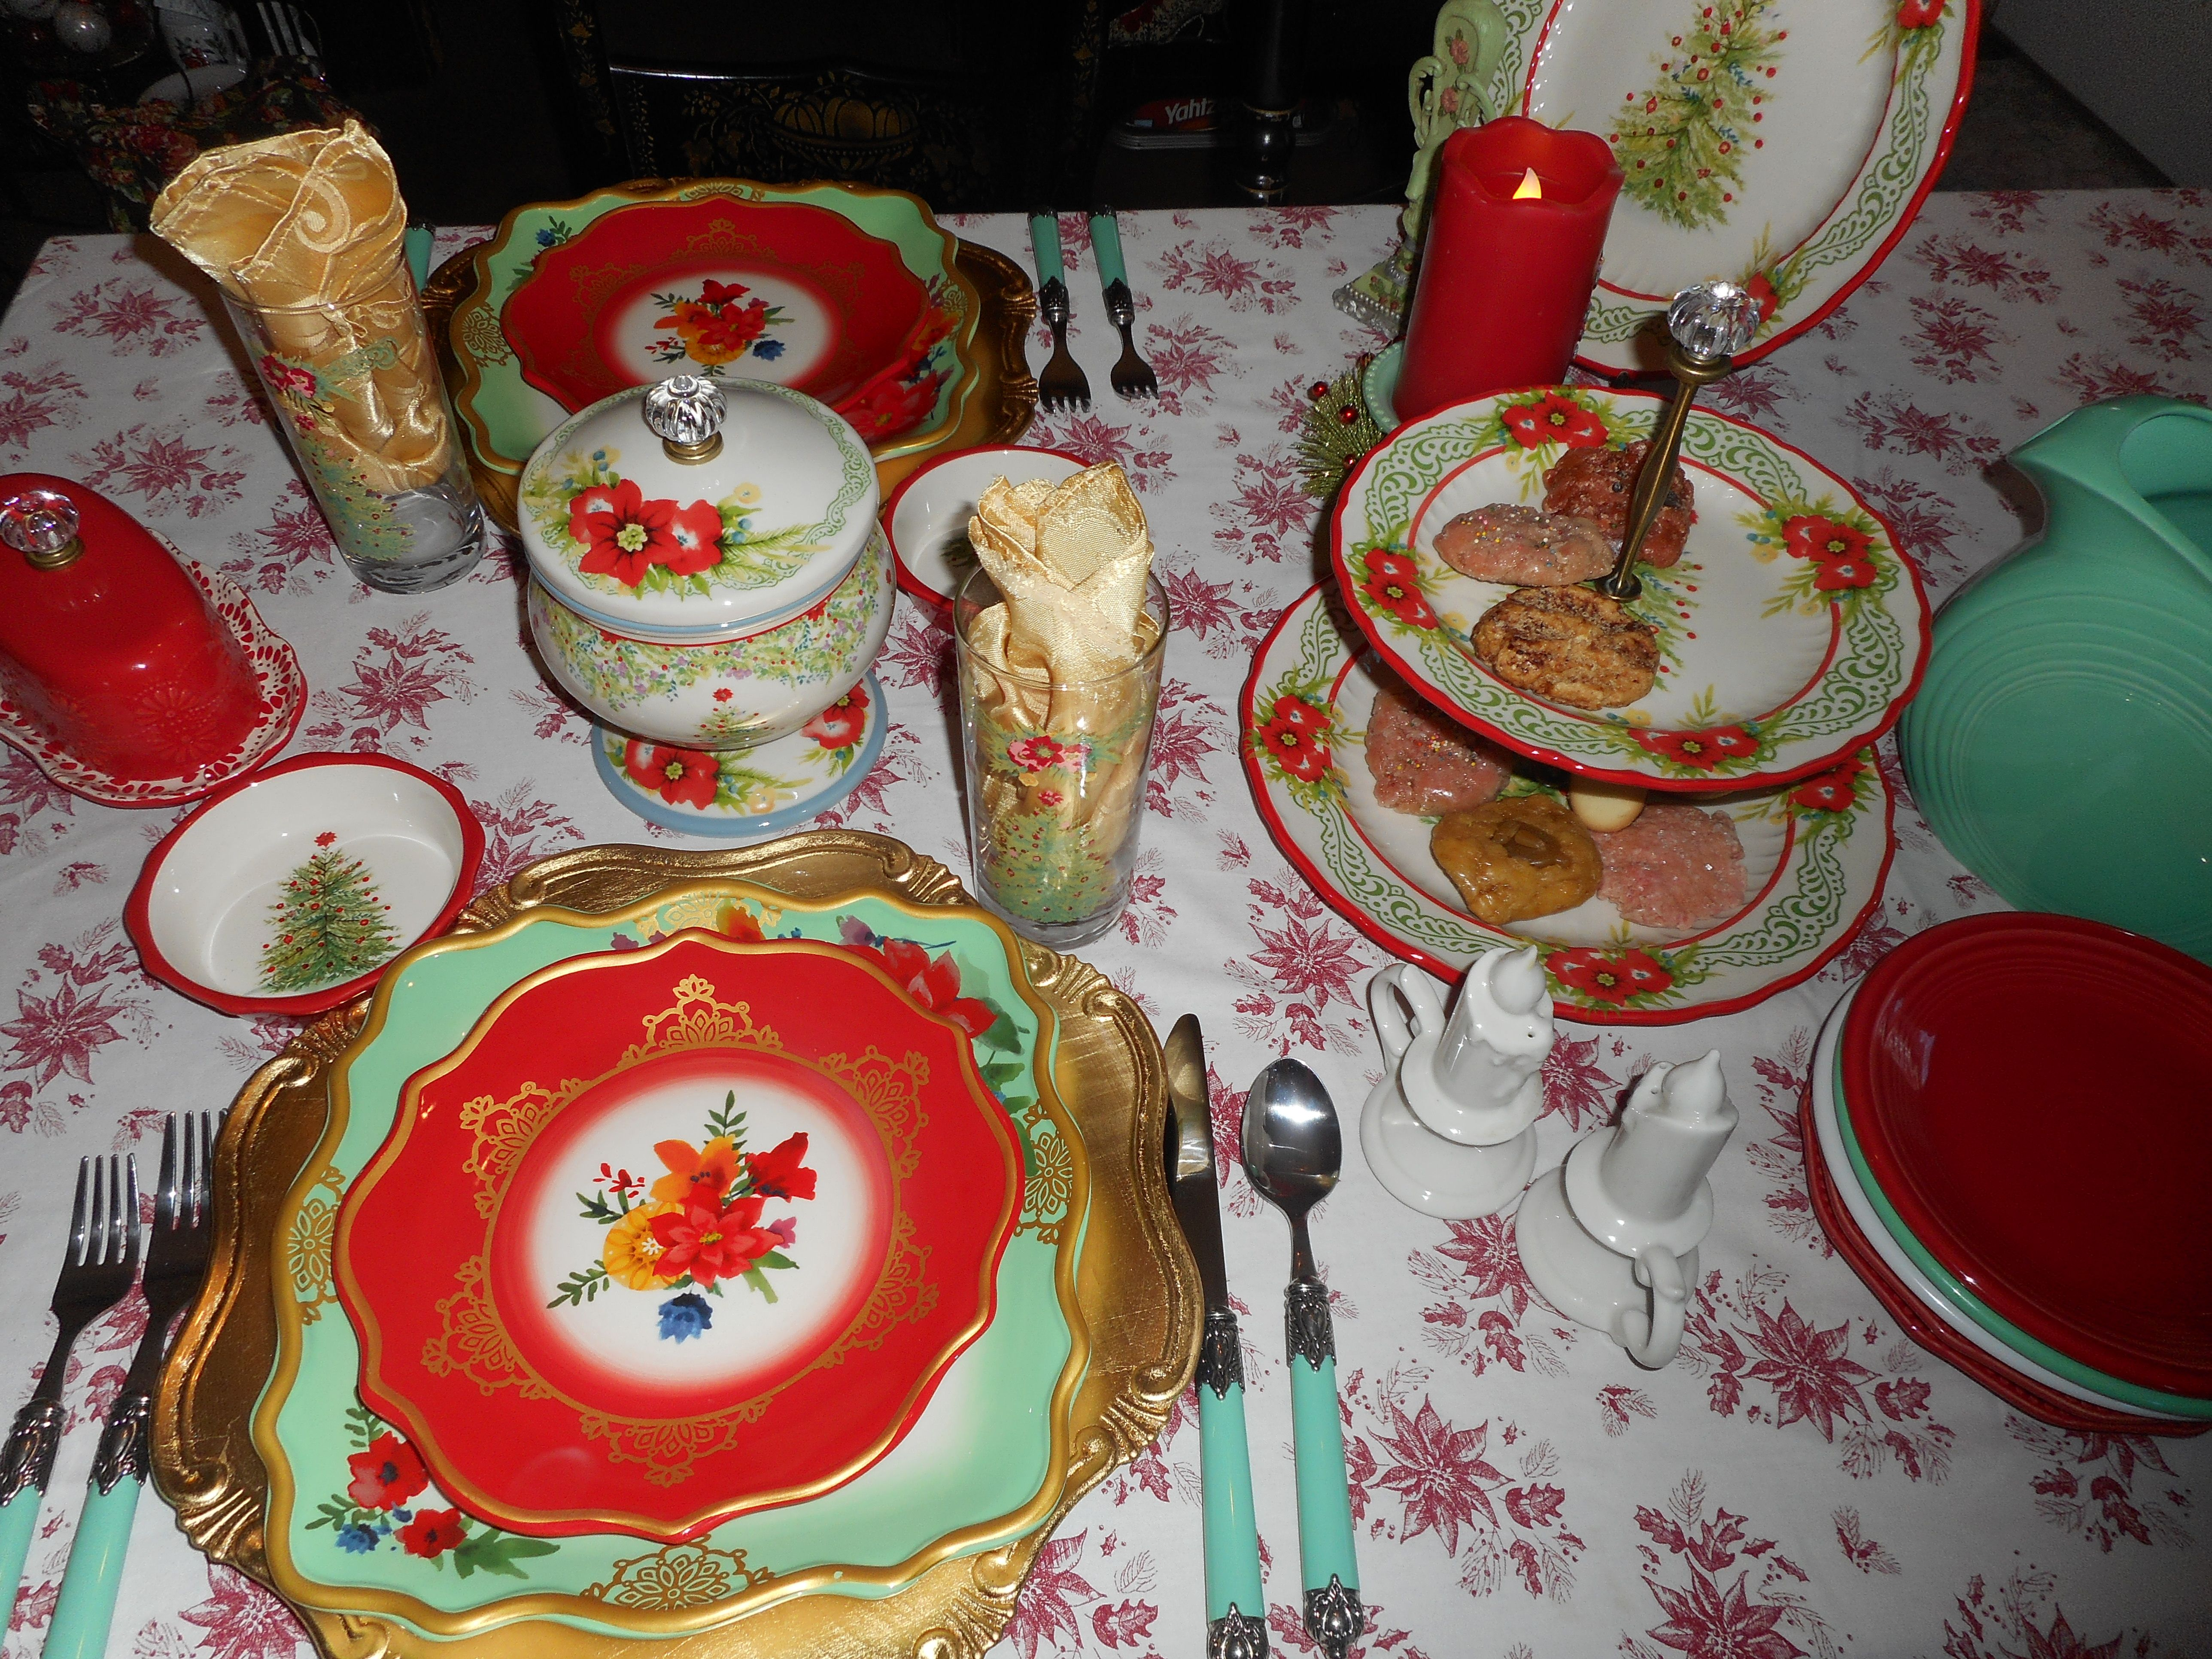 pioneer woman christmas dishes pioneer woman dishes christmas dishes christmas decorations christmas starters